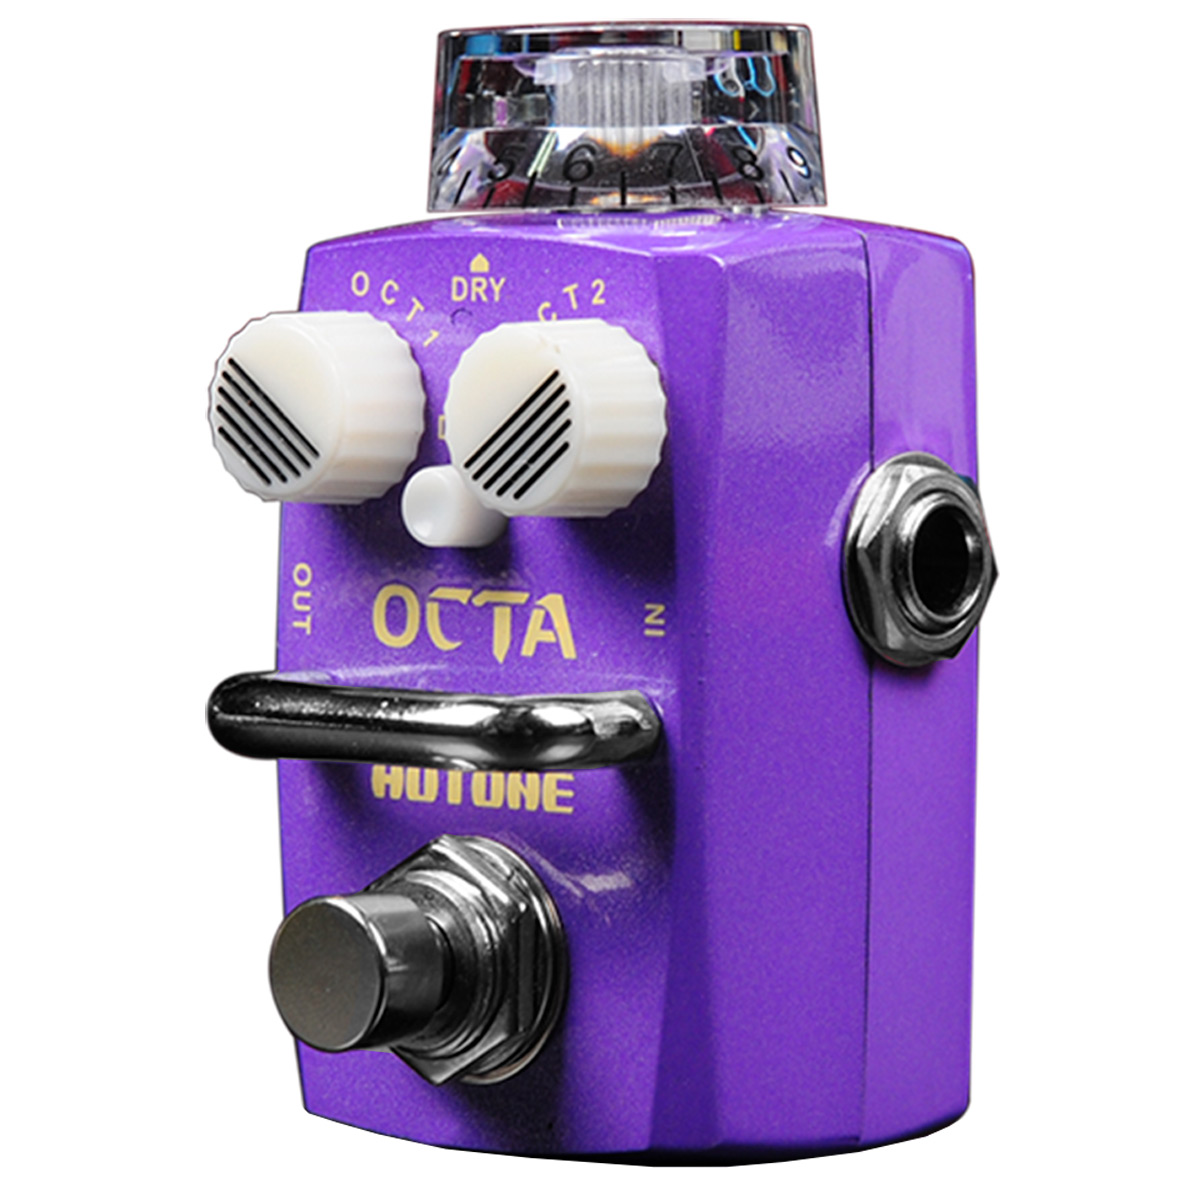 SOC1 - Pedal Guitarra Octa Frequency SOC 1 - Hotone